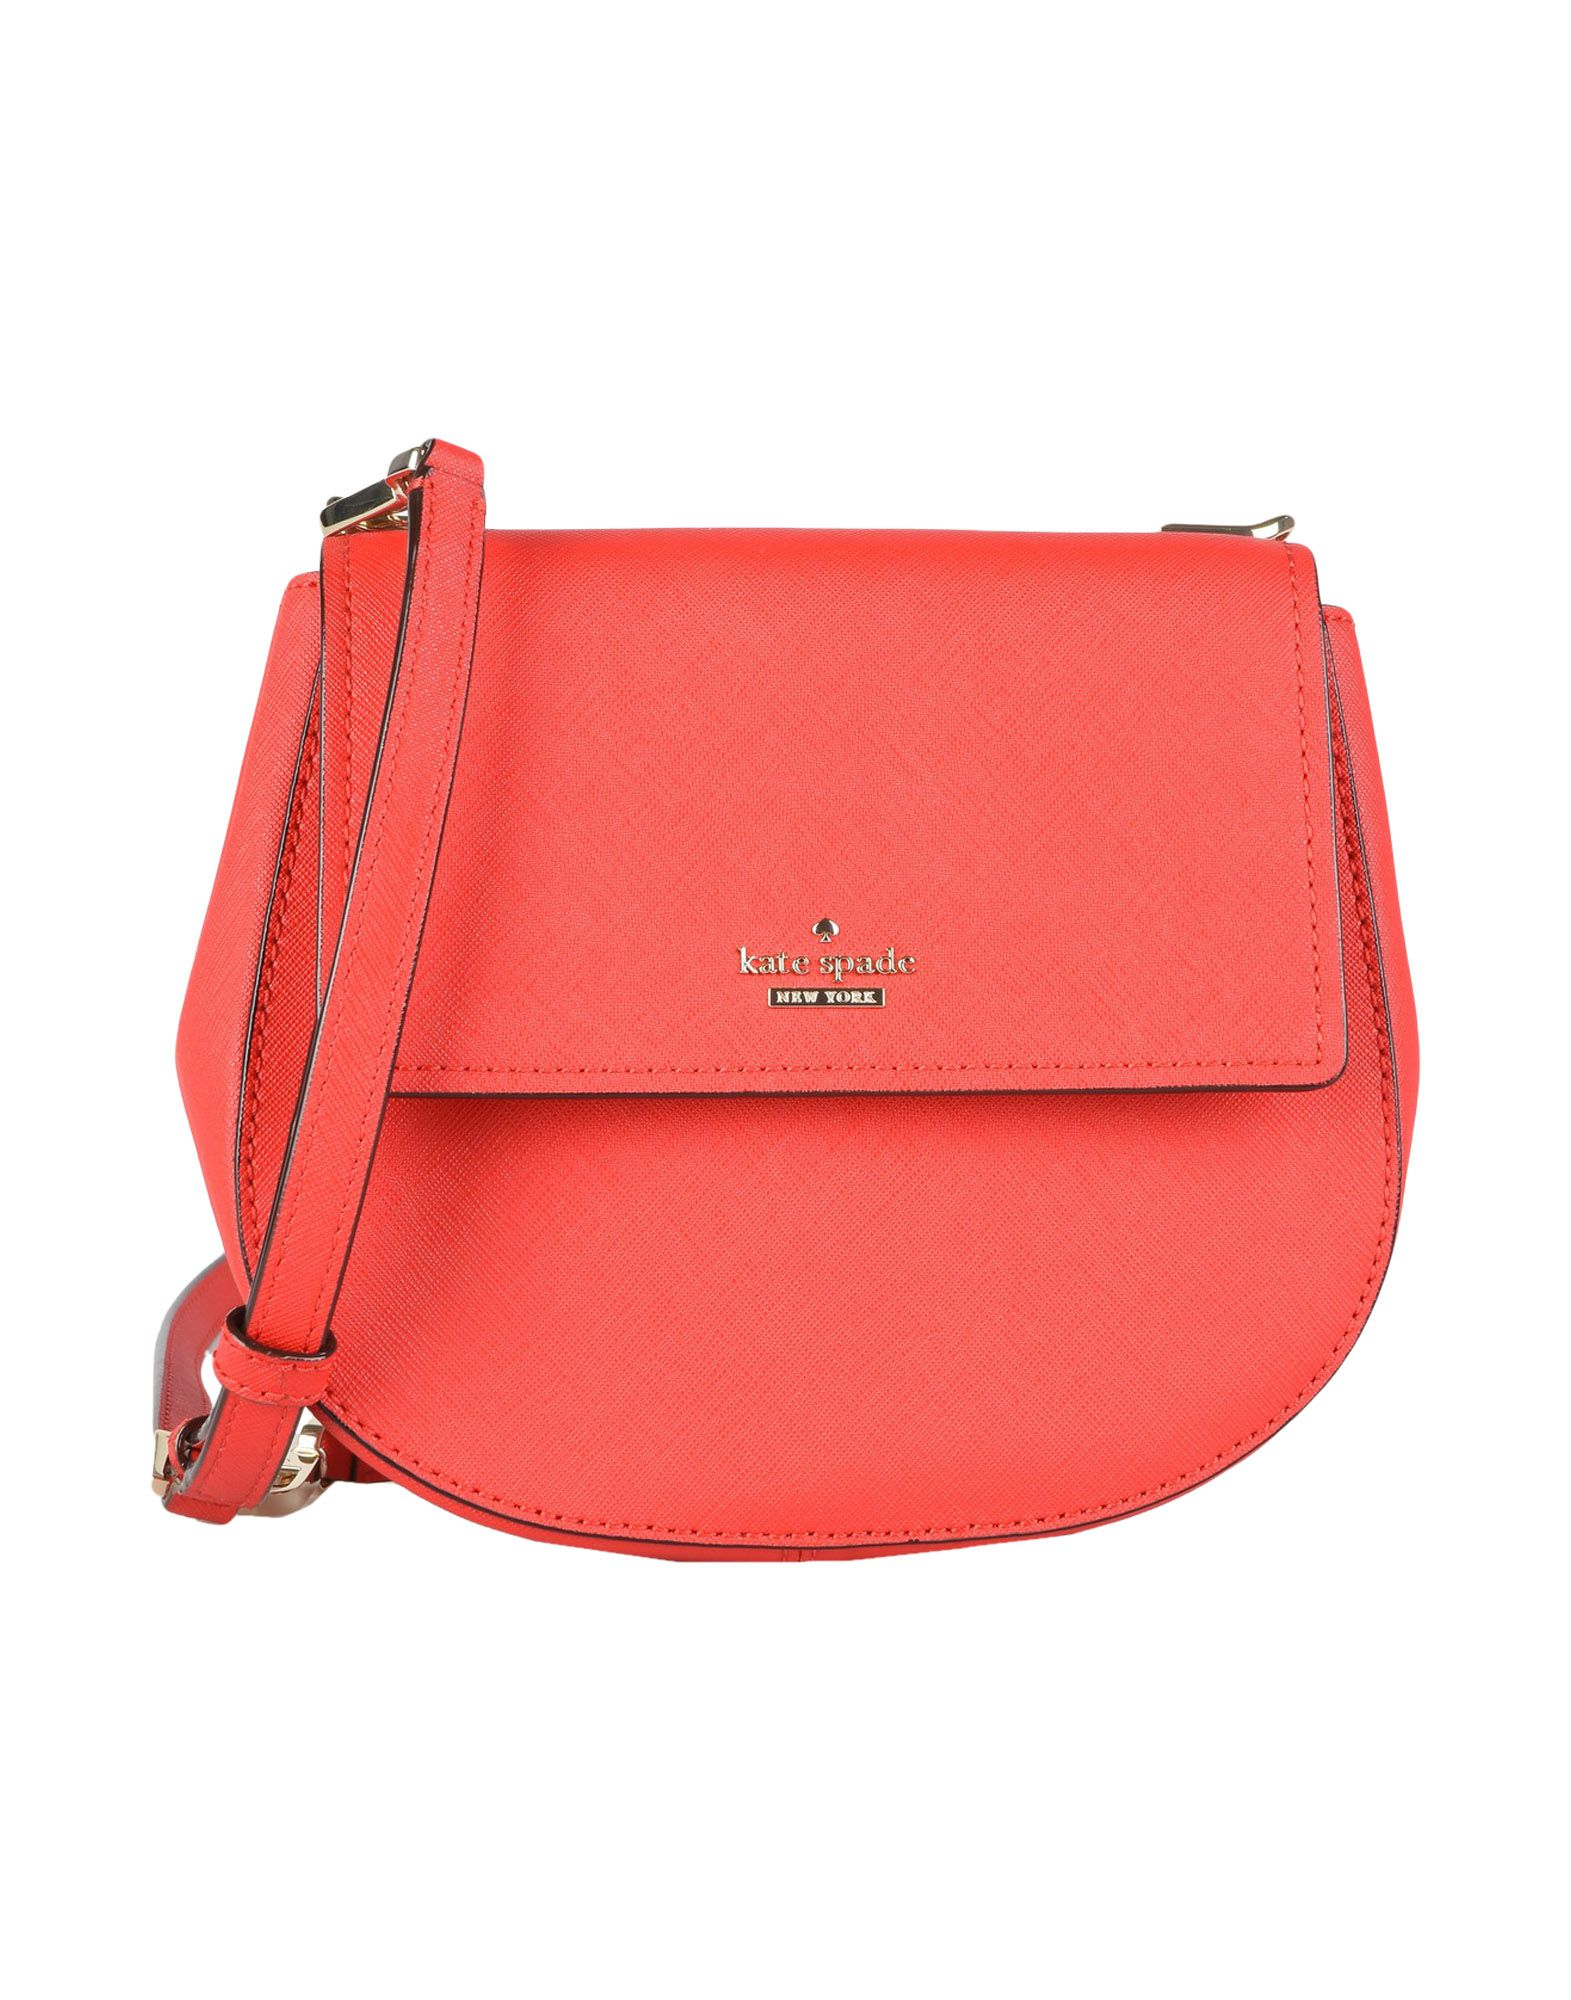 Borsa A Mano Kate Spade New York Donna - Acquista online su